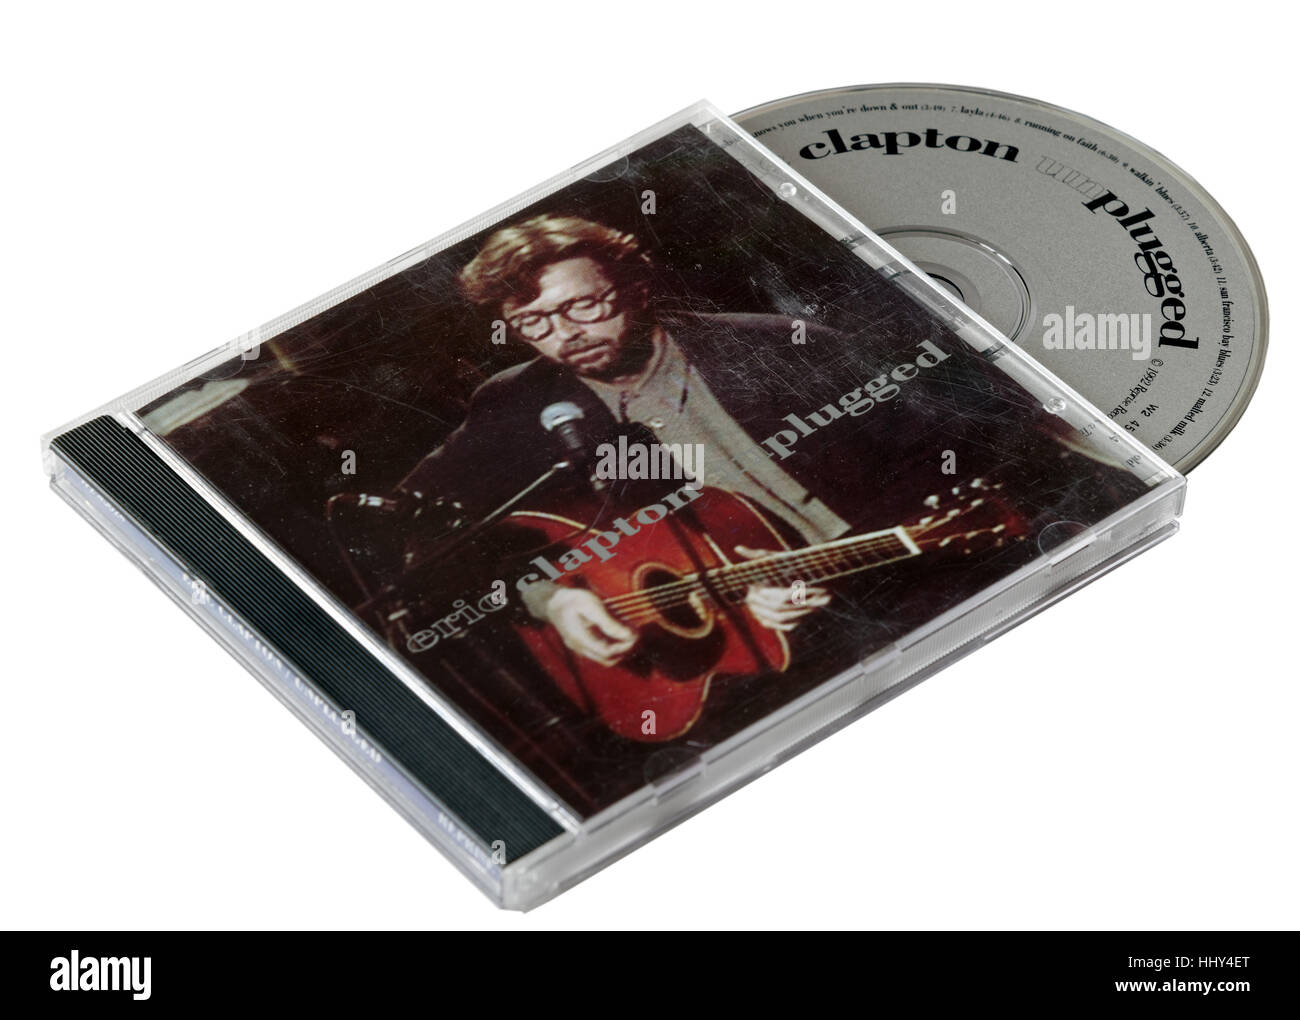 Eric Clapton Unplugged CD - Stock Image